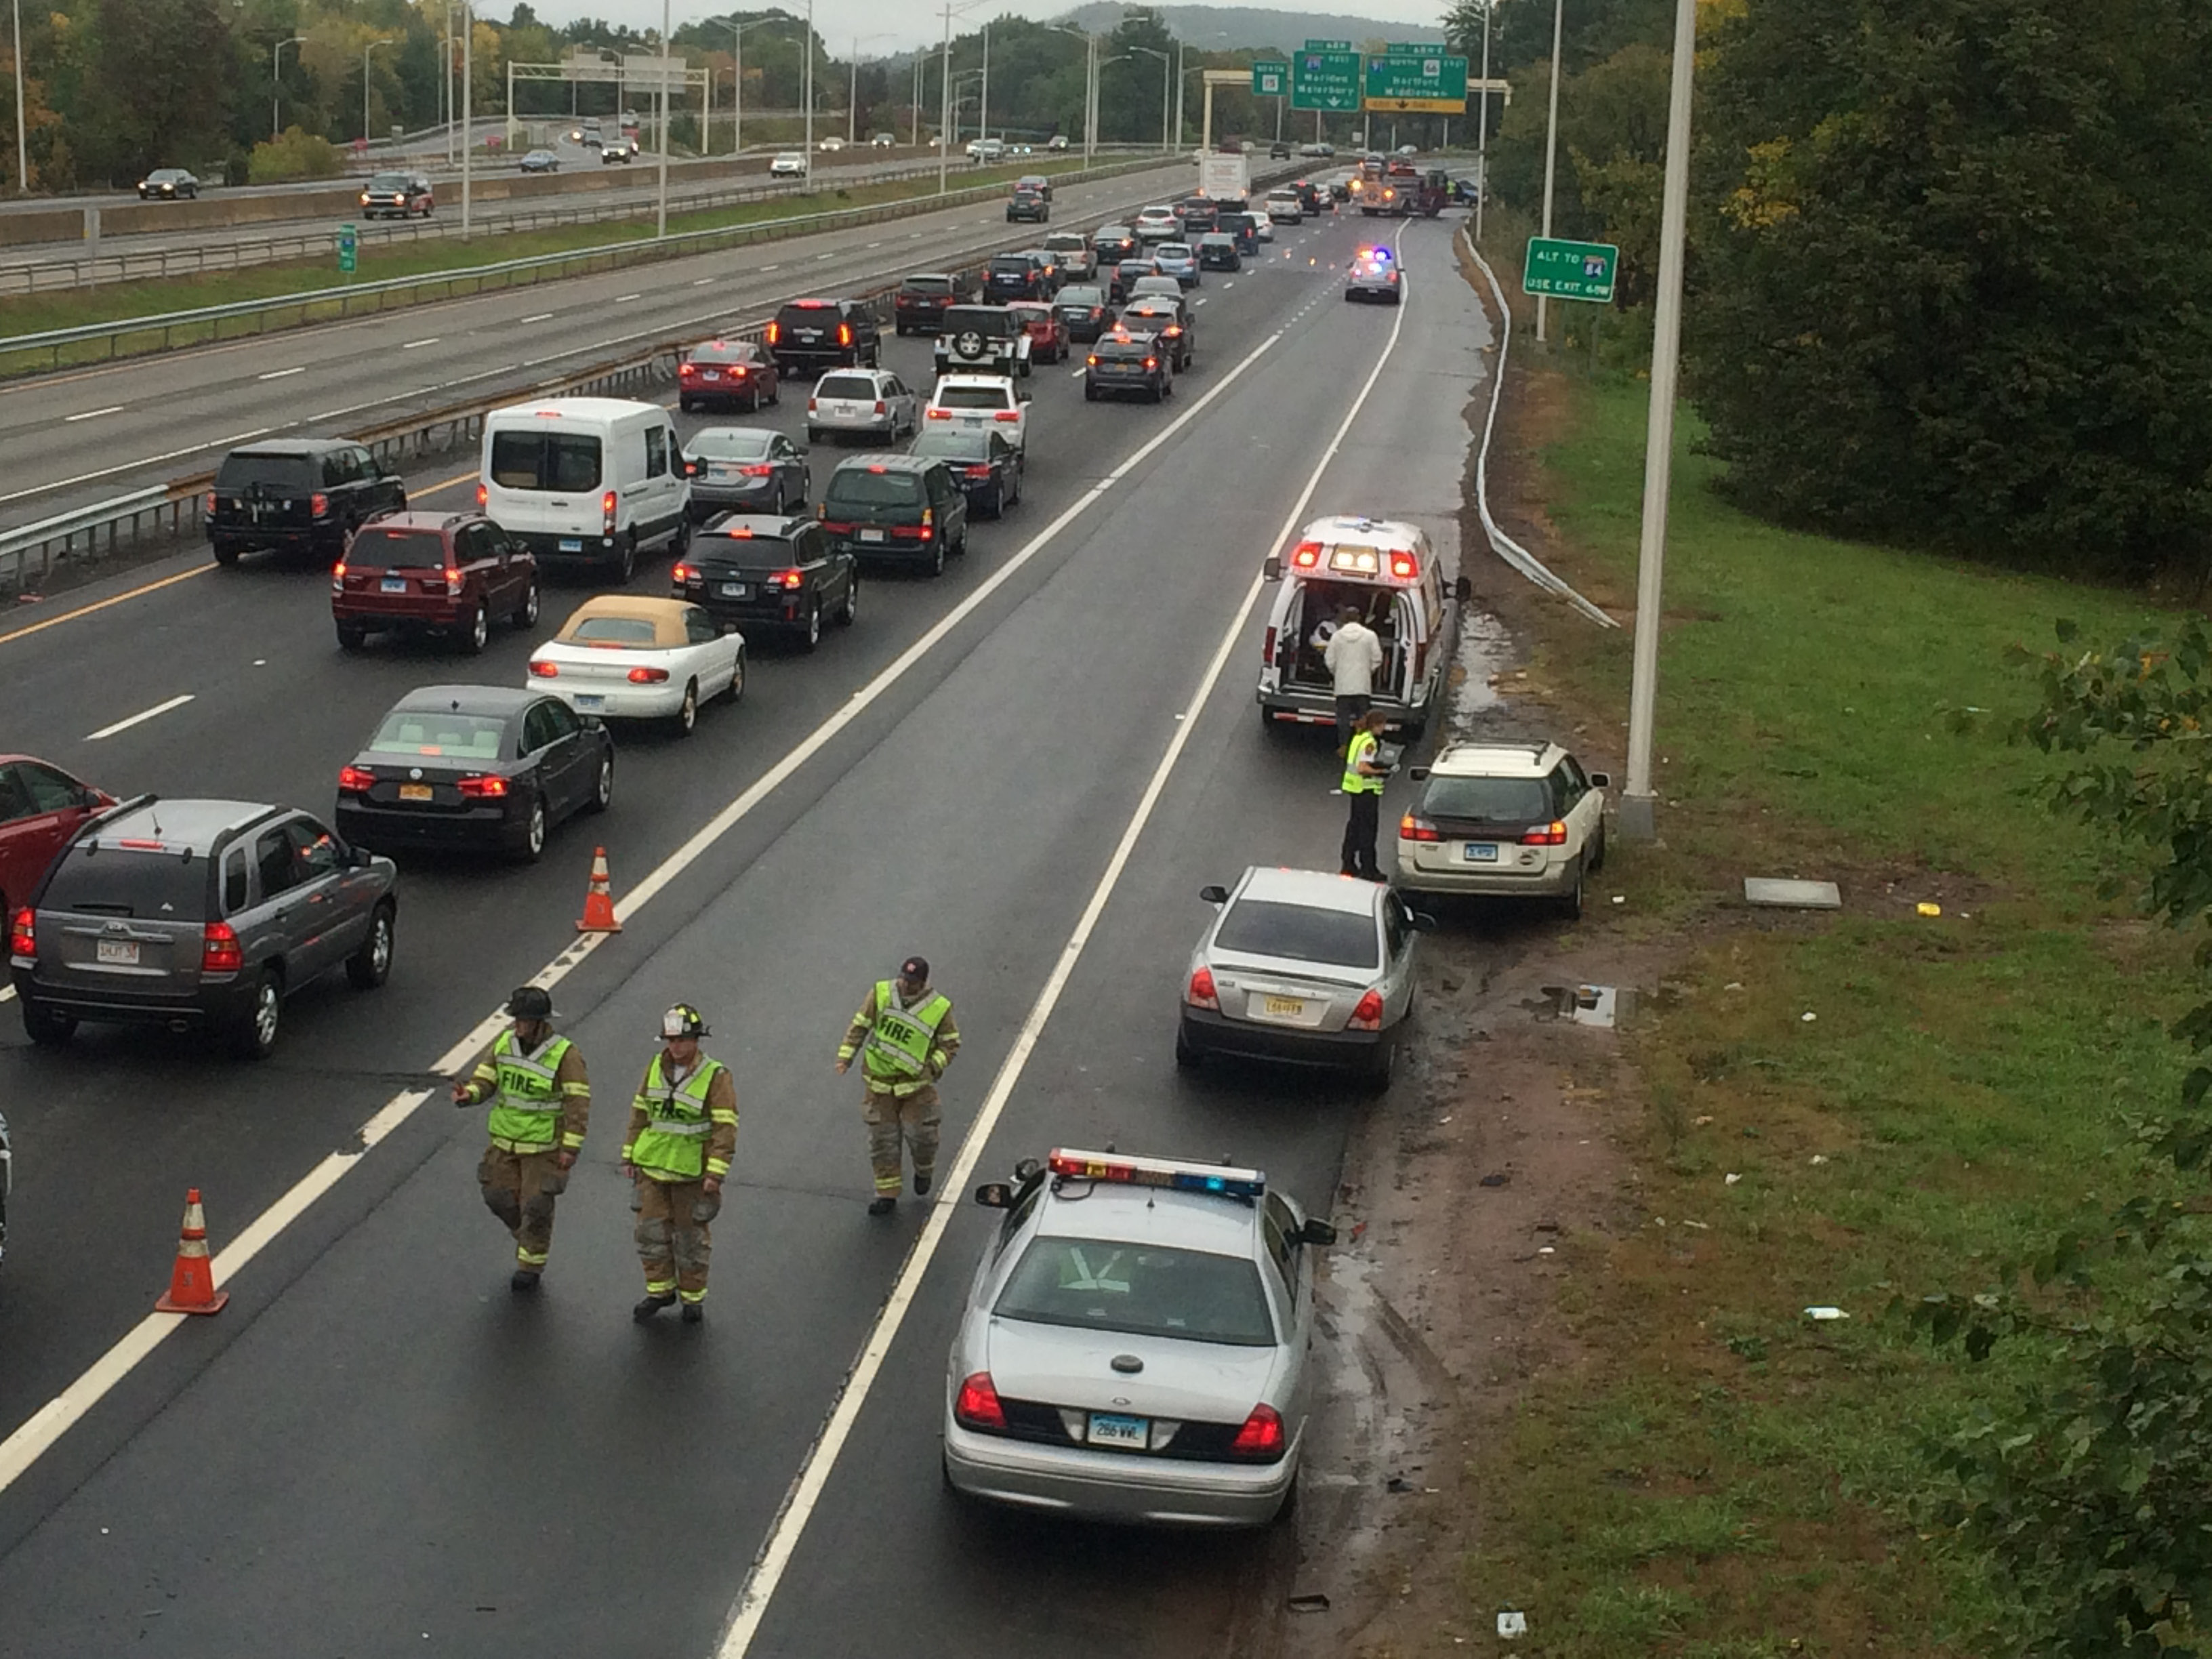 MERIDEN — A three-car accident tied up traffic on Route 15 north